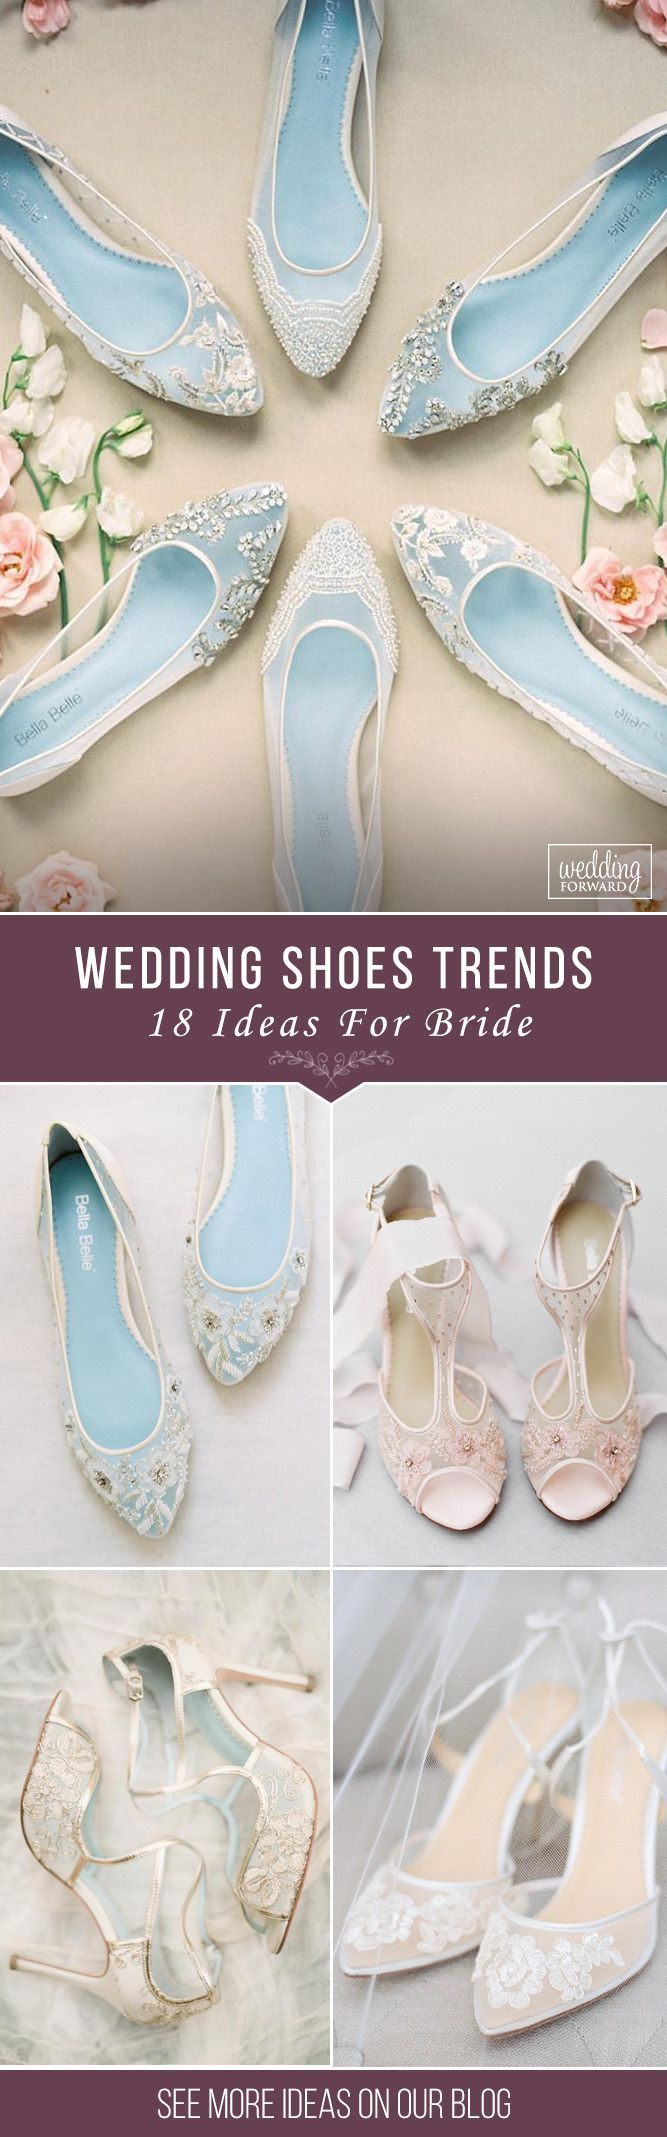 Hottest Wedding Shoes Trends For Bride ❤️ Bridal shoes ideas lace flats comfortable high heels bella belle  ❤️ See more: http://www.weddingforward.com/wedding-shoes-trends/ #weddingforward #wedding #bride #weddingshoes